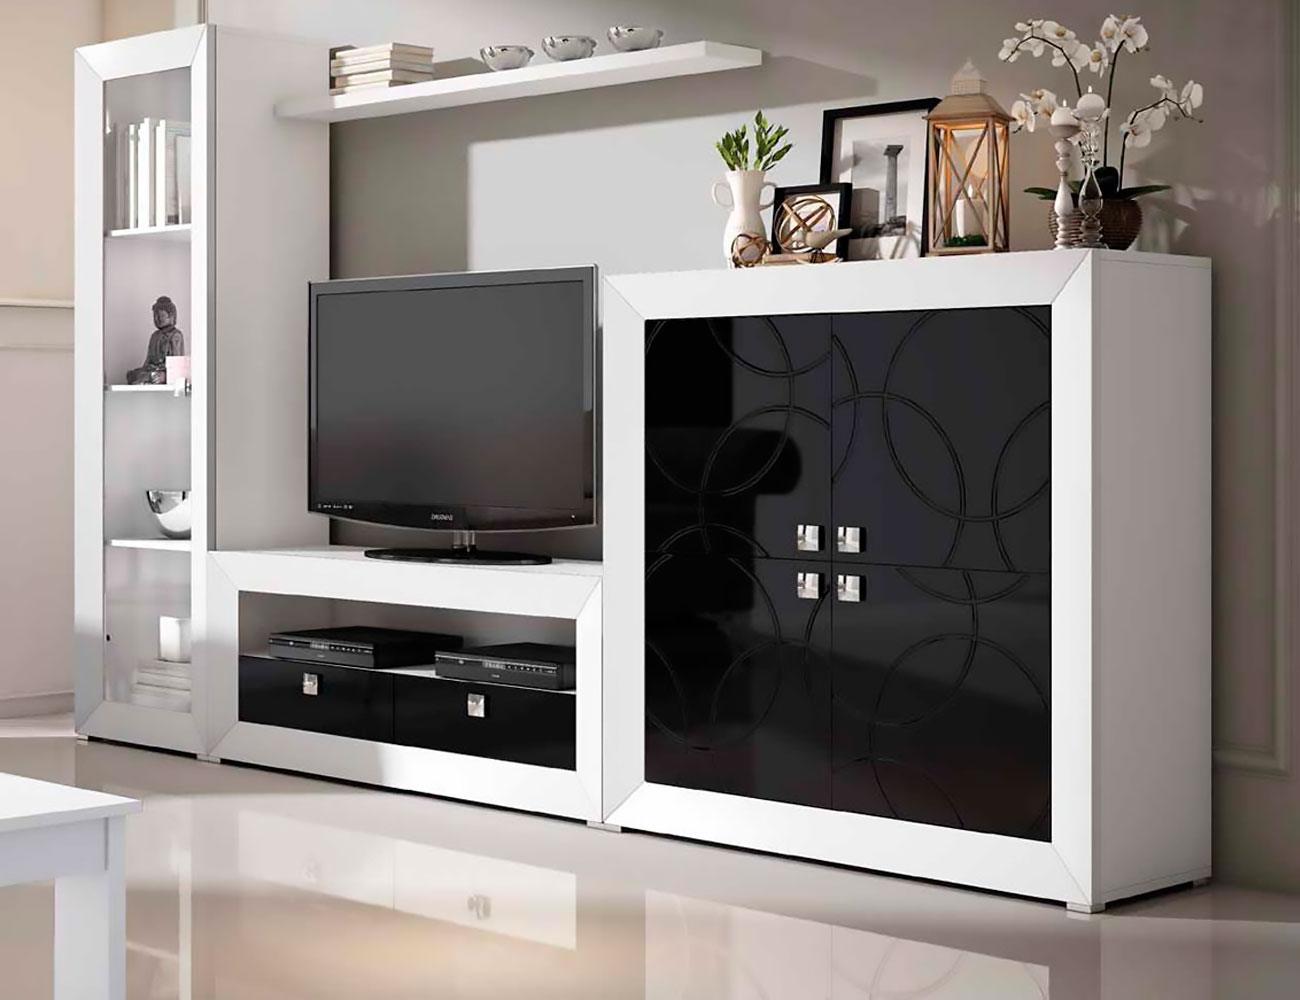 Mueble de sal n modular moderno lacado 2452 factory for Modulares de salon